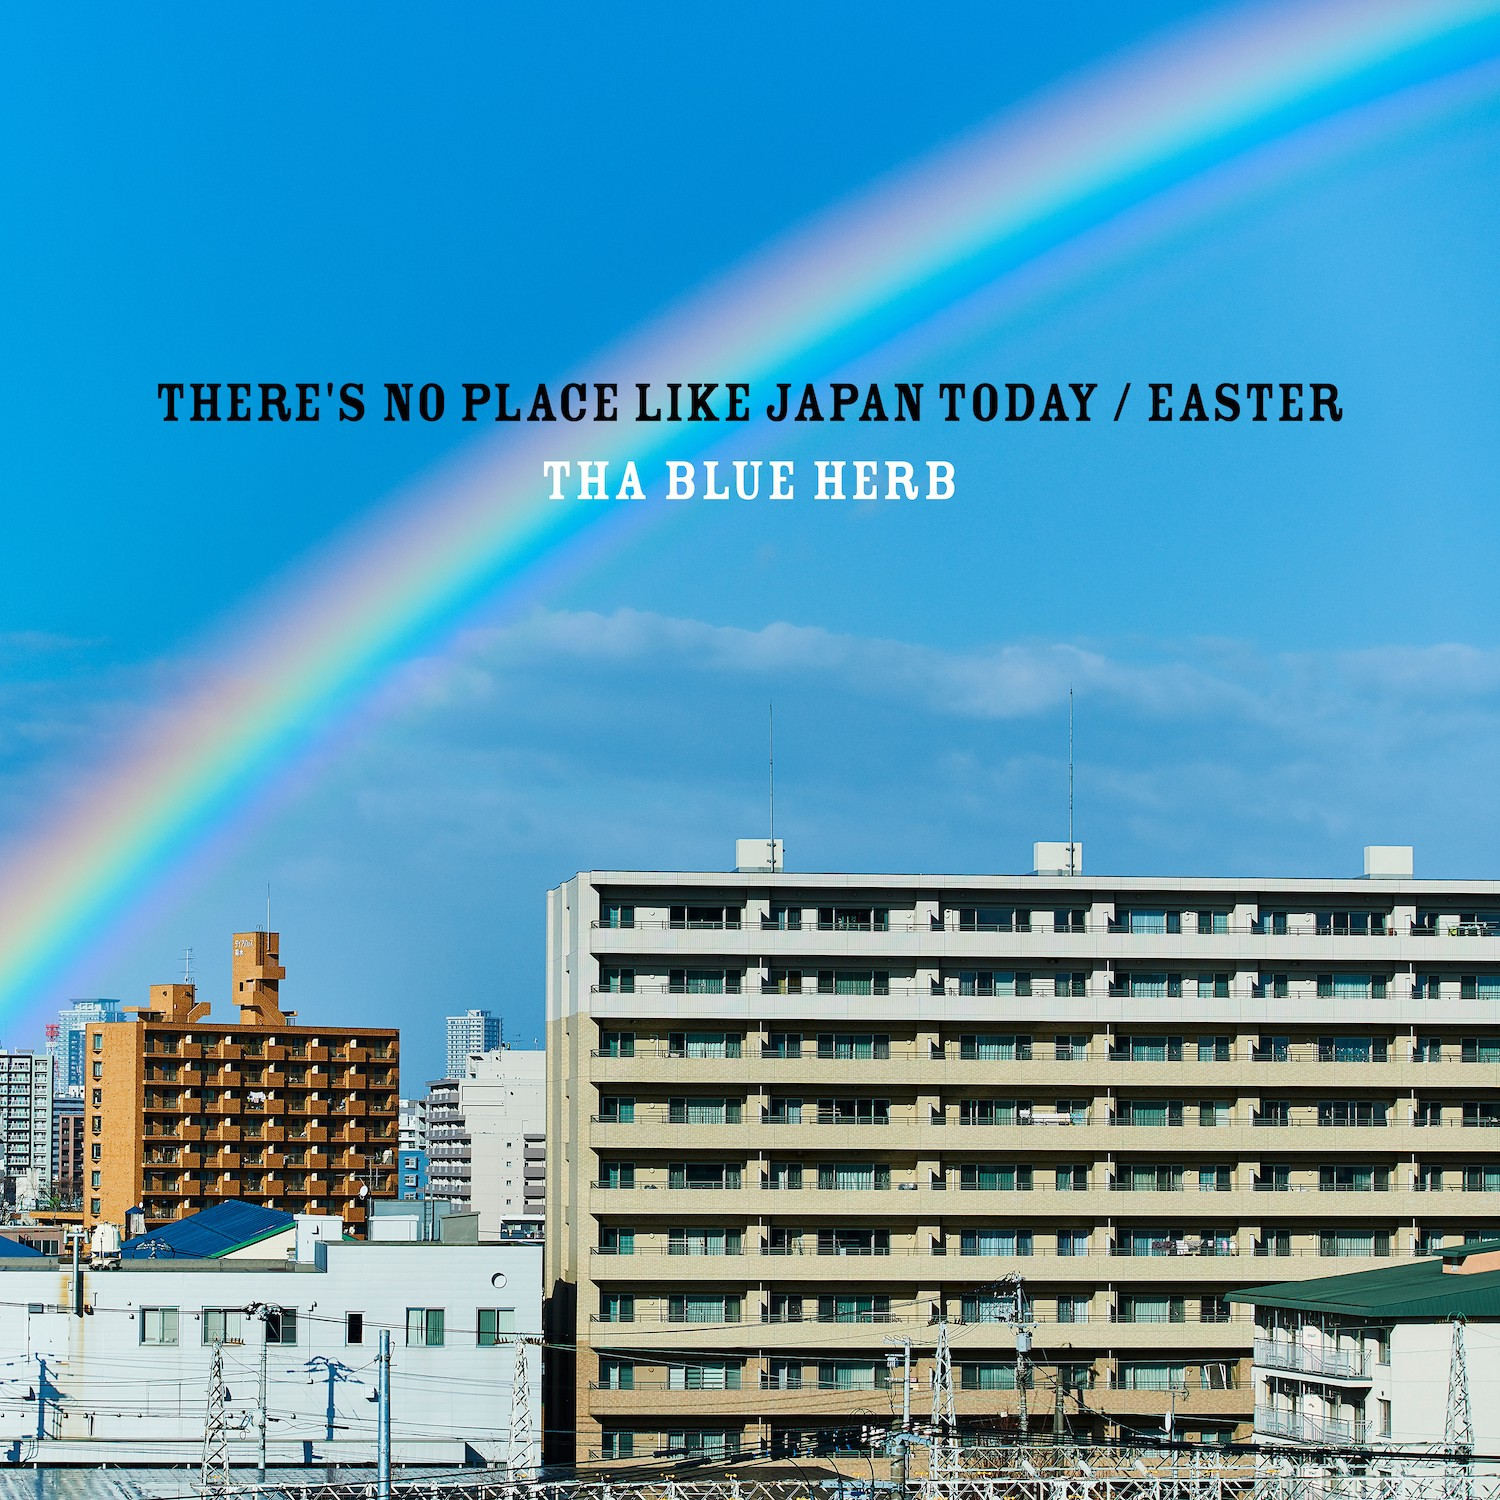 THA BLUE HERB – THERE'S NO PLACE LIKE JAPAN TODAY / EASTER [FLAC / 24bit Lossless / WEB] [2019.05.01]